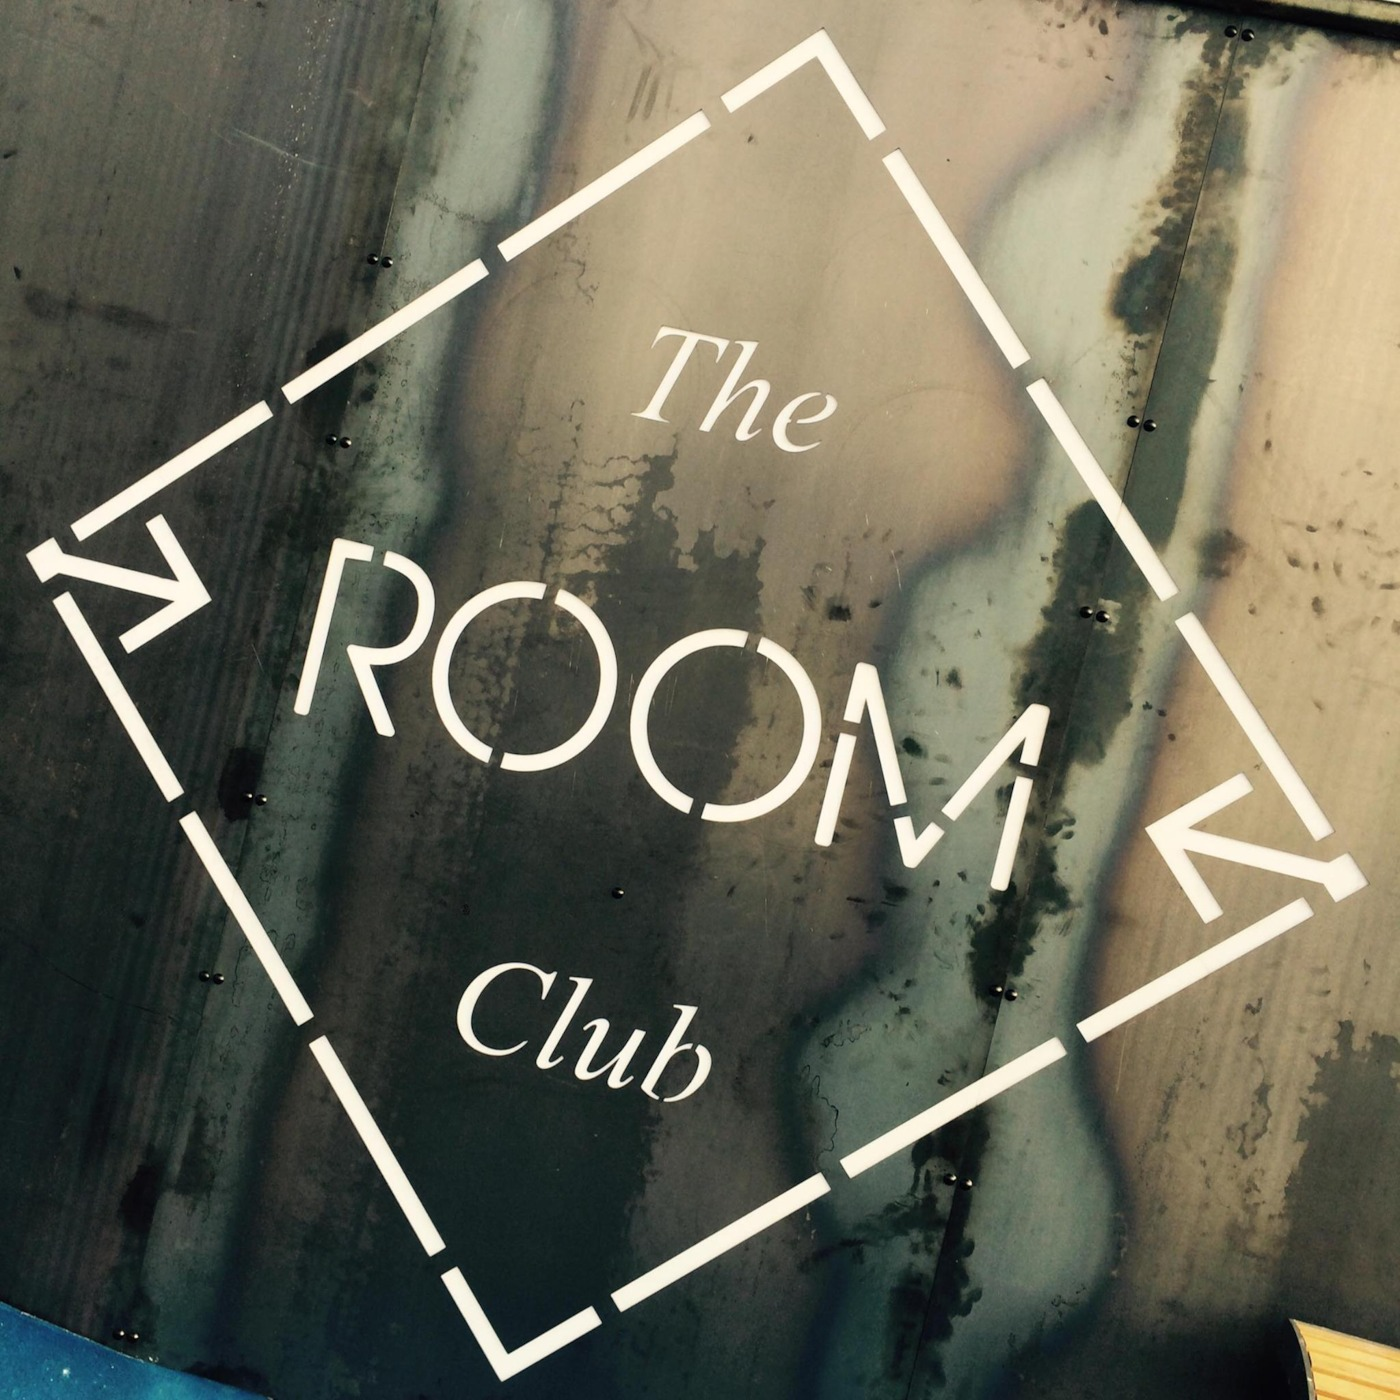 Live Podcast ROOM CLUB by Steven A